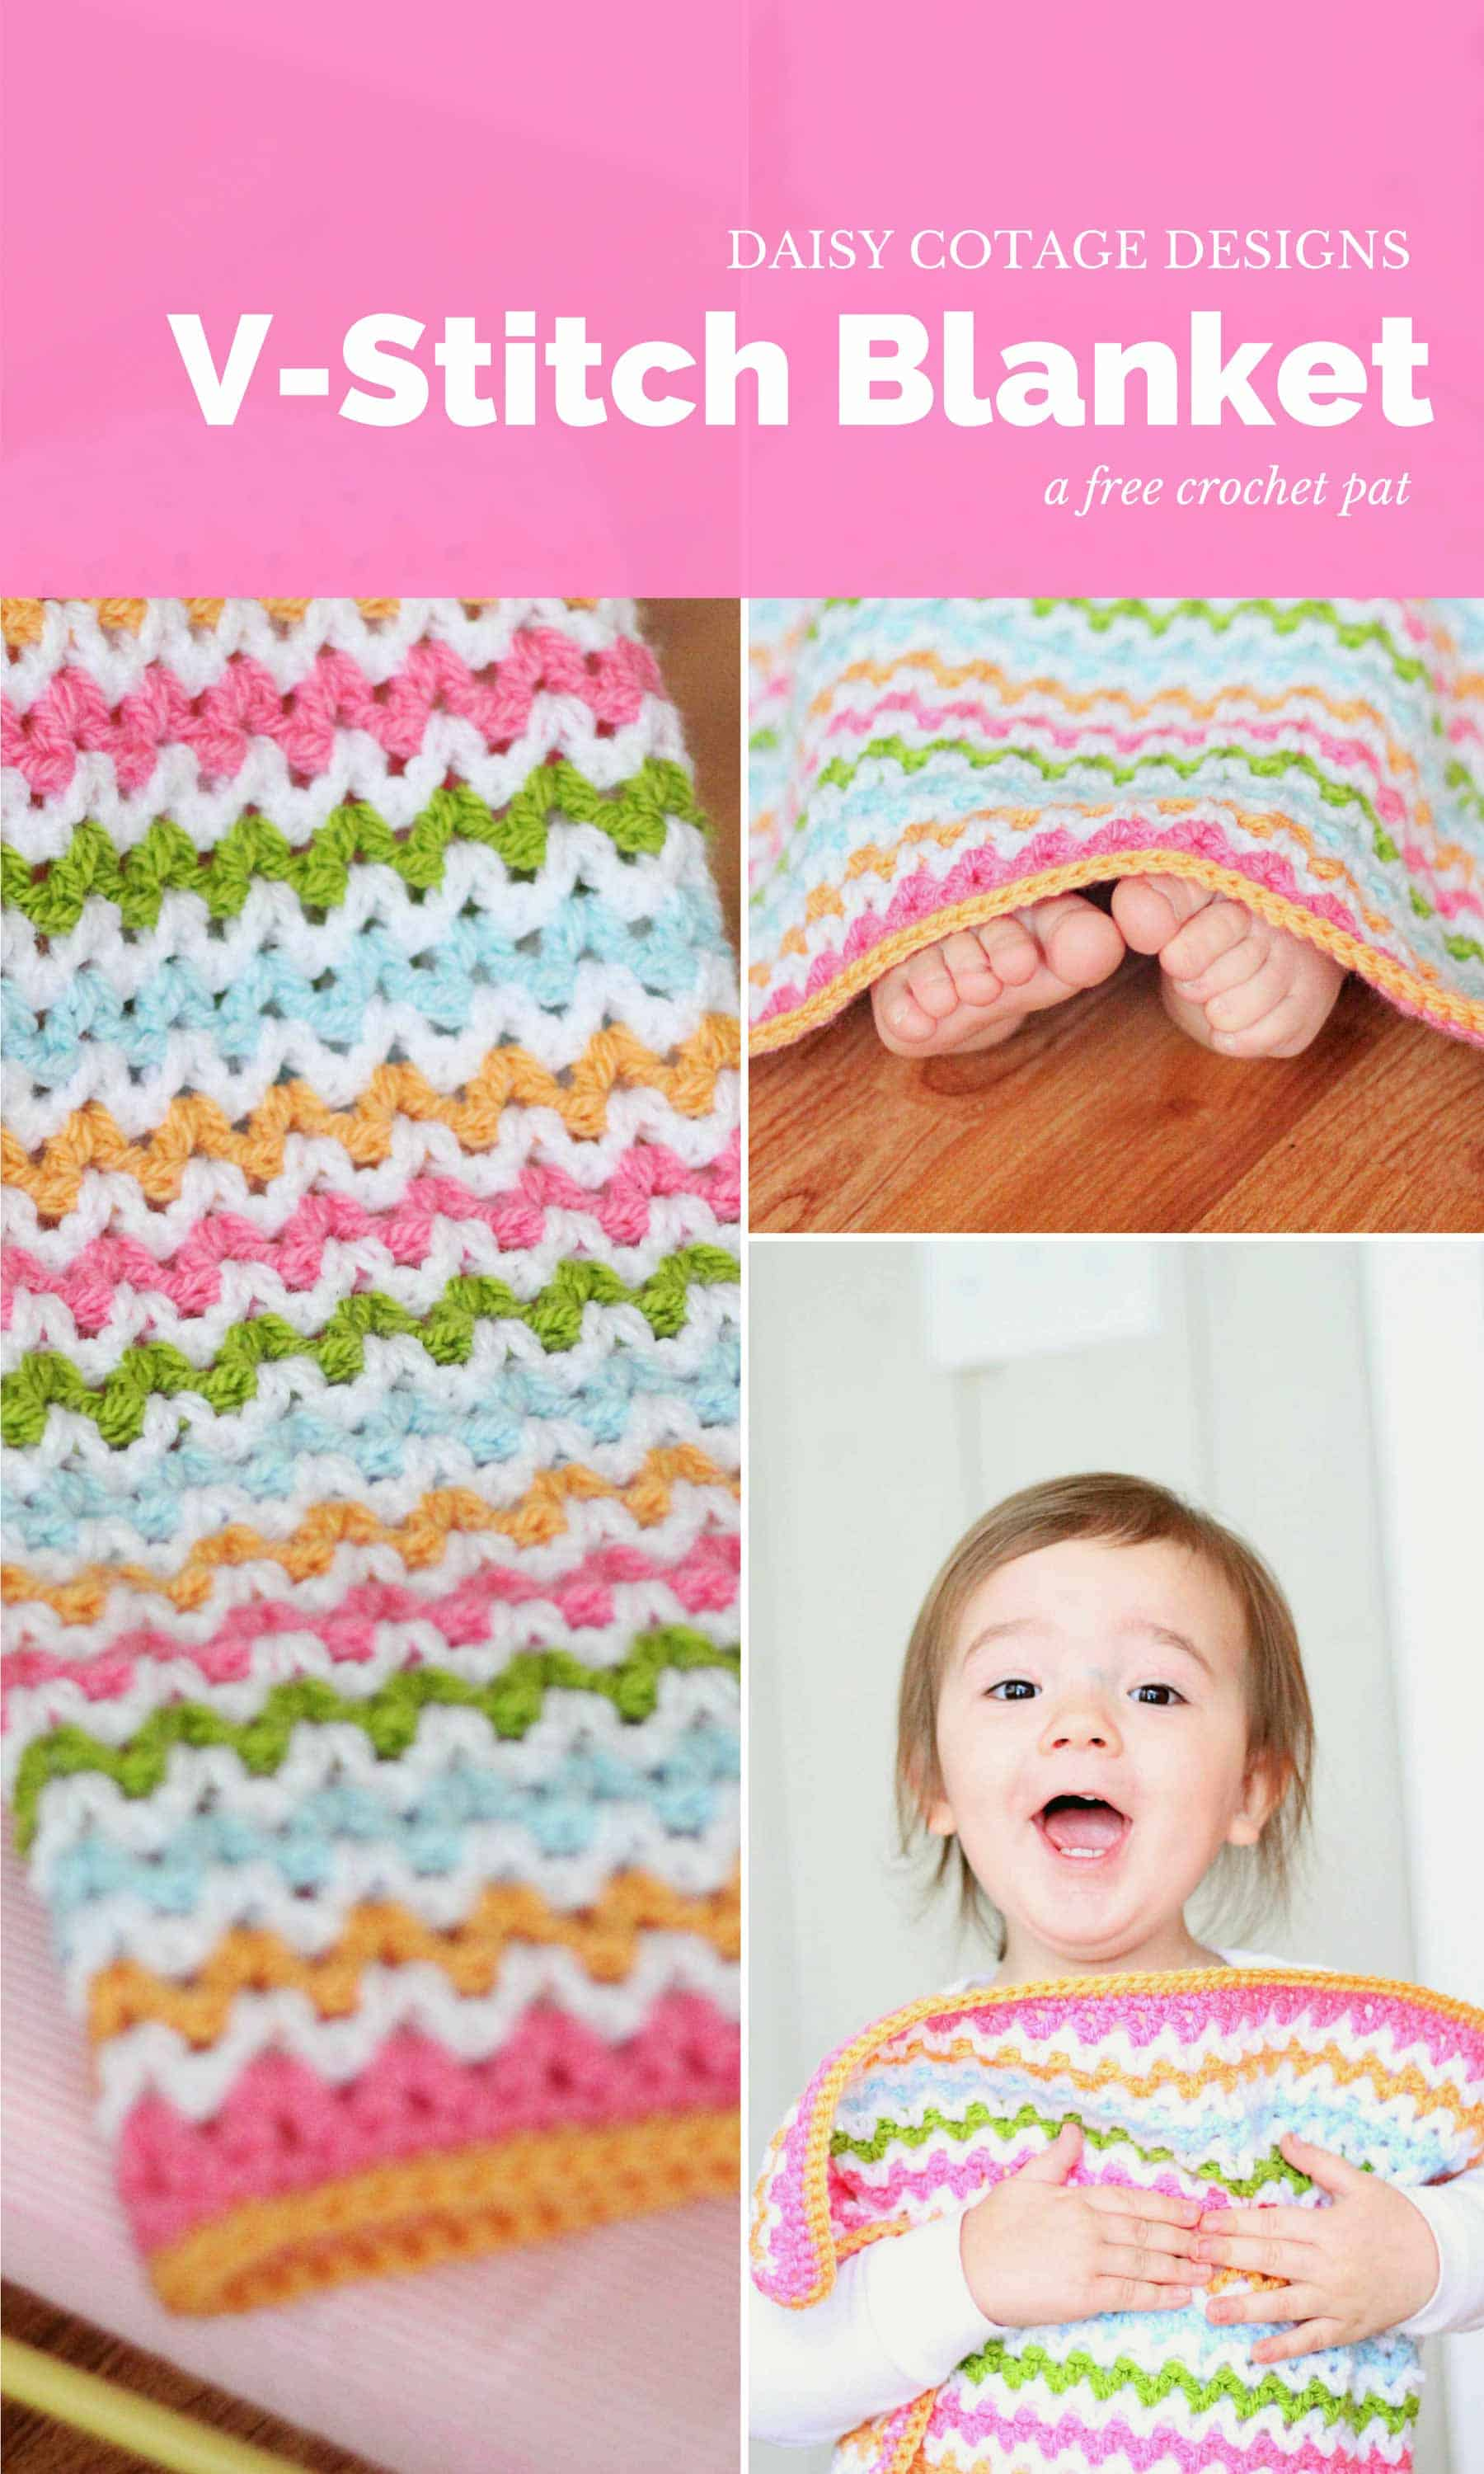 Use this adorable v stitch crochet pattern to create this crochet baby blanket in any size you wish. Free crochet pattern from Daisy Cottage Designs. | baby blanket crochet pattern, easy crochet patter, free crochet pattern, rainbow blanket crochet pattern